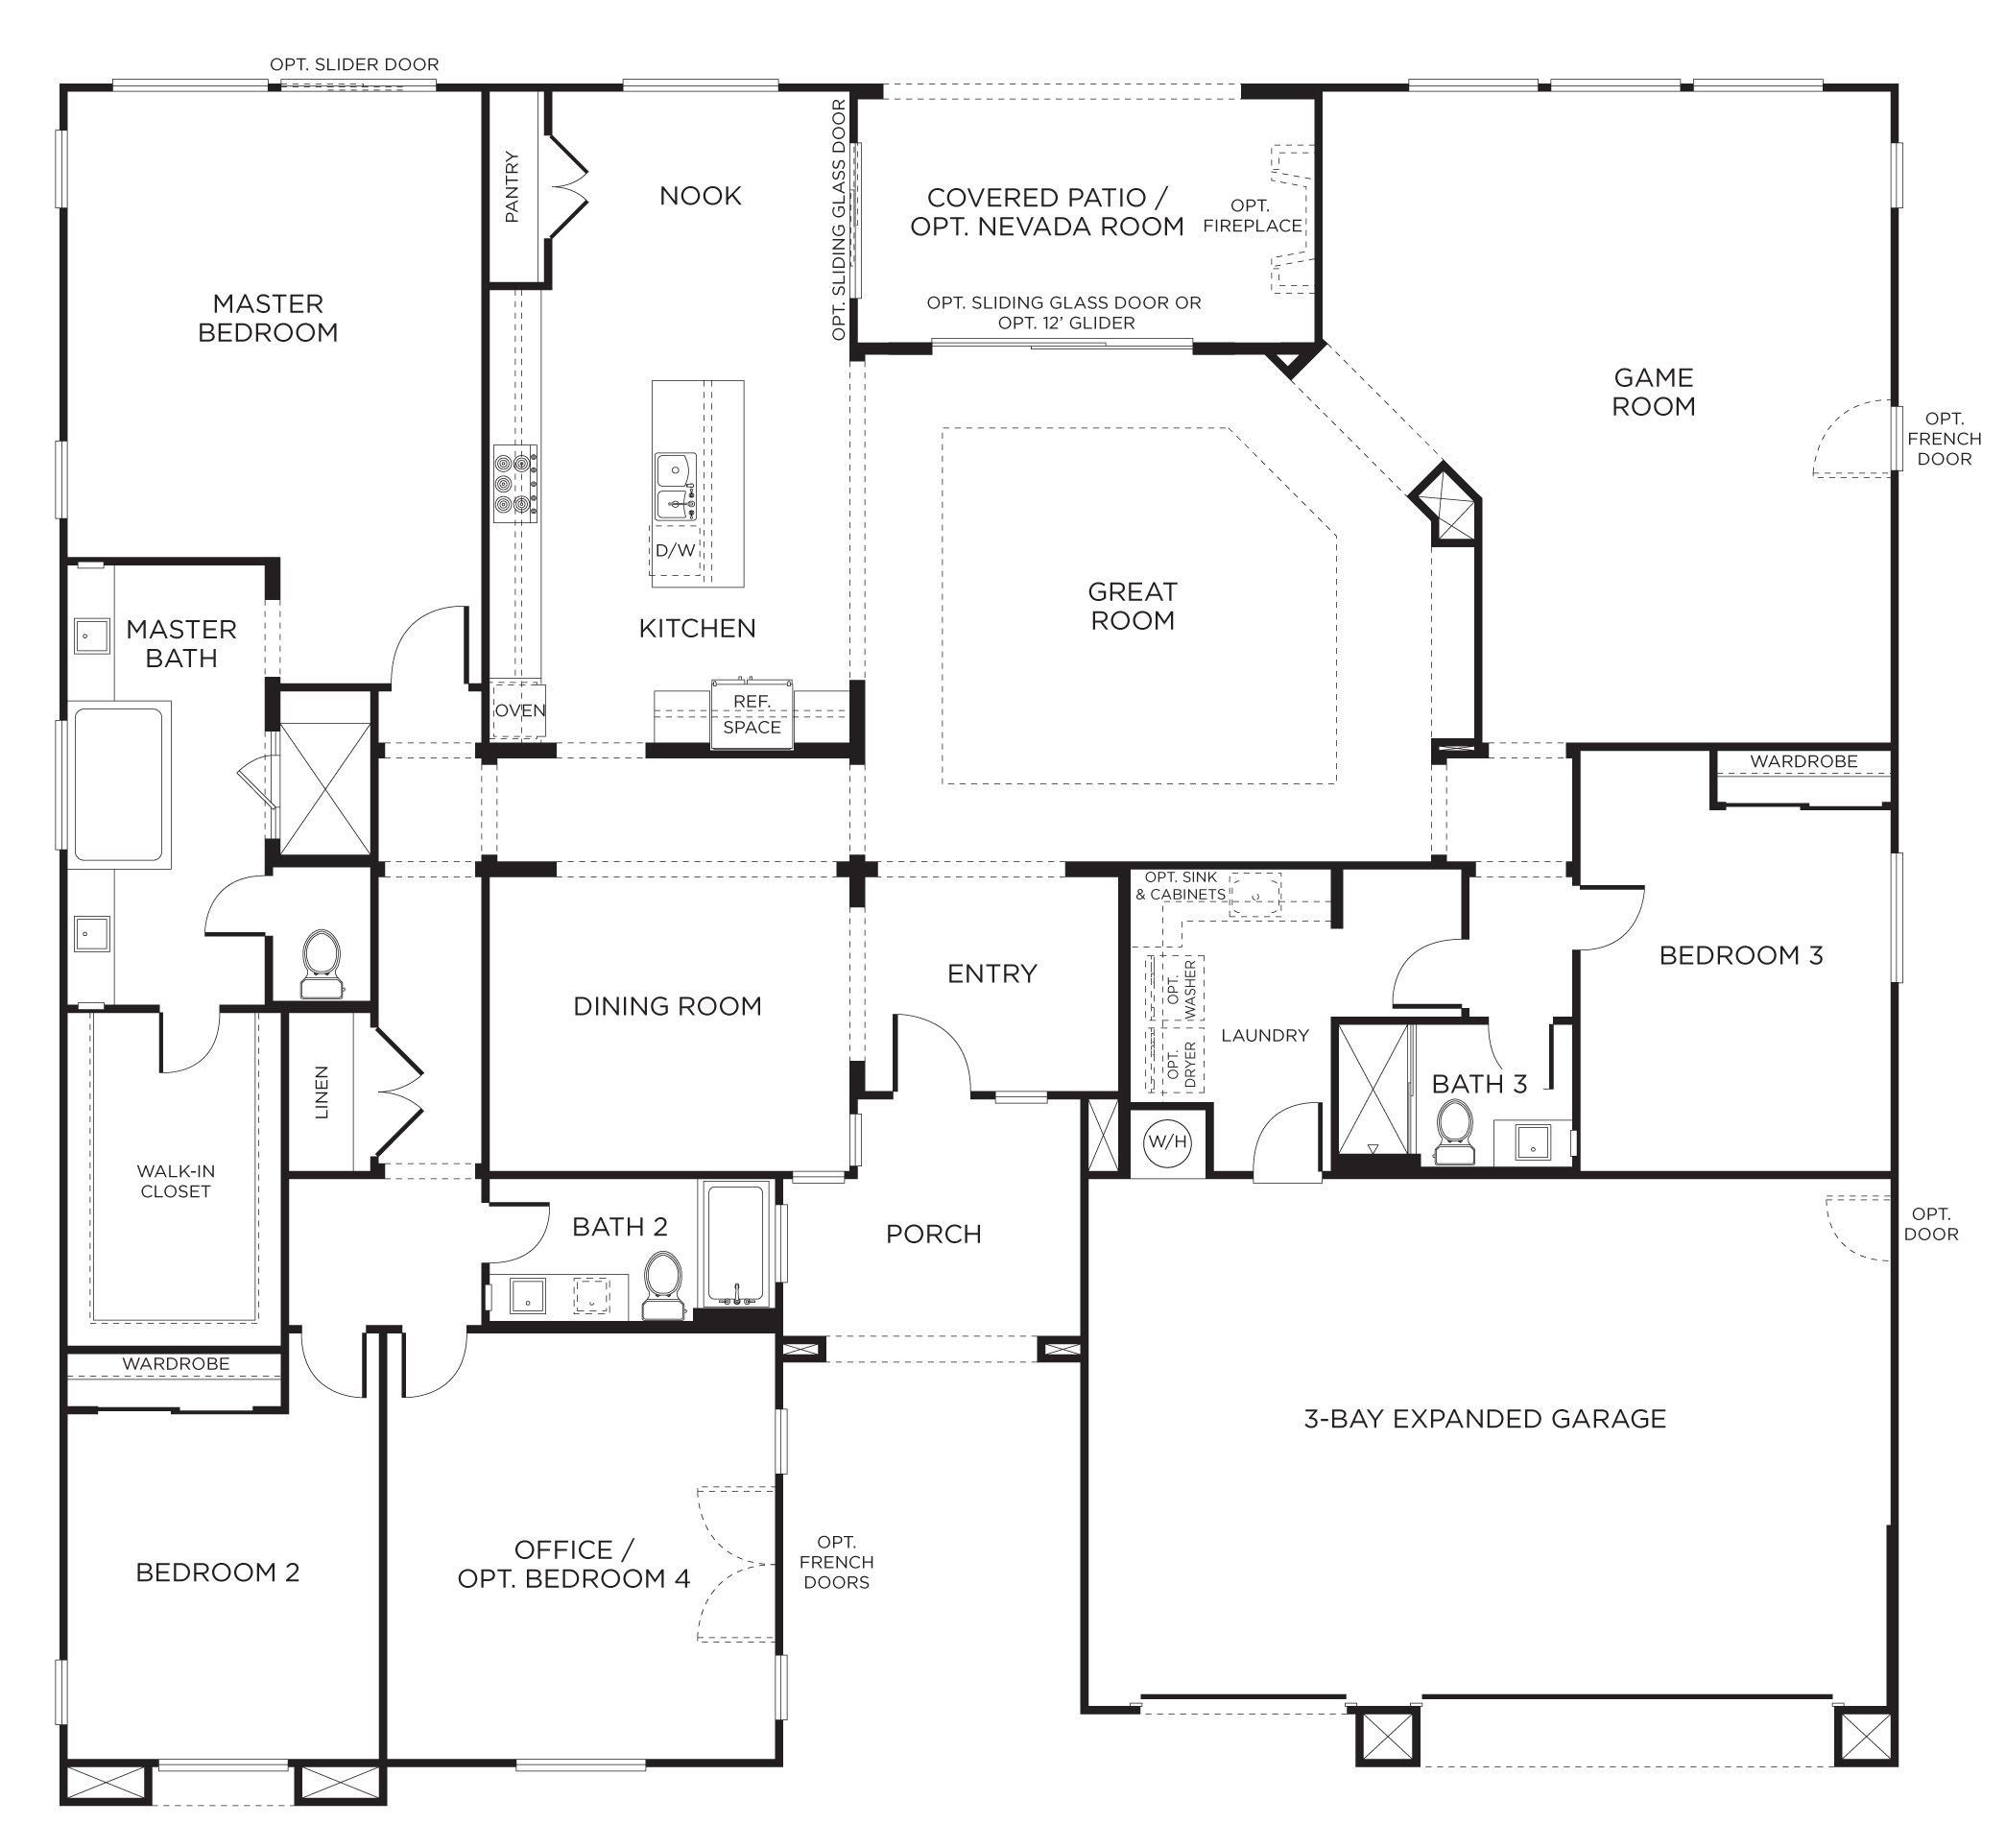 Floorplan 2 3 4 bedrooms 3 bathrooms 3400 square feet for Single story home plans